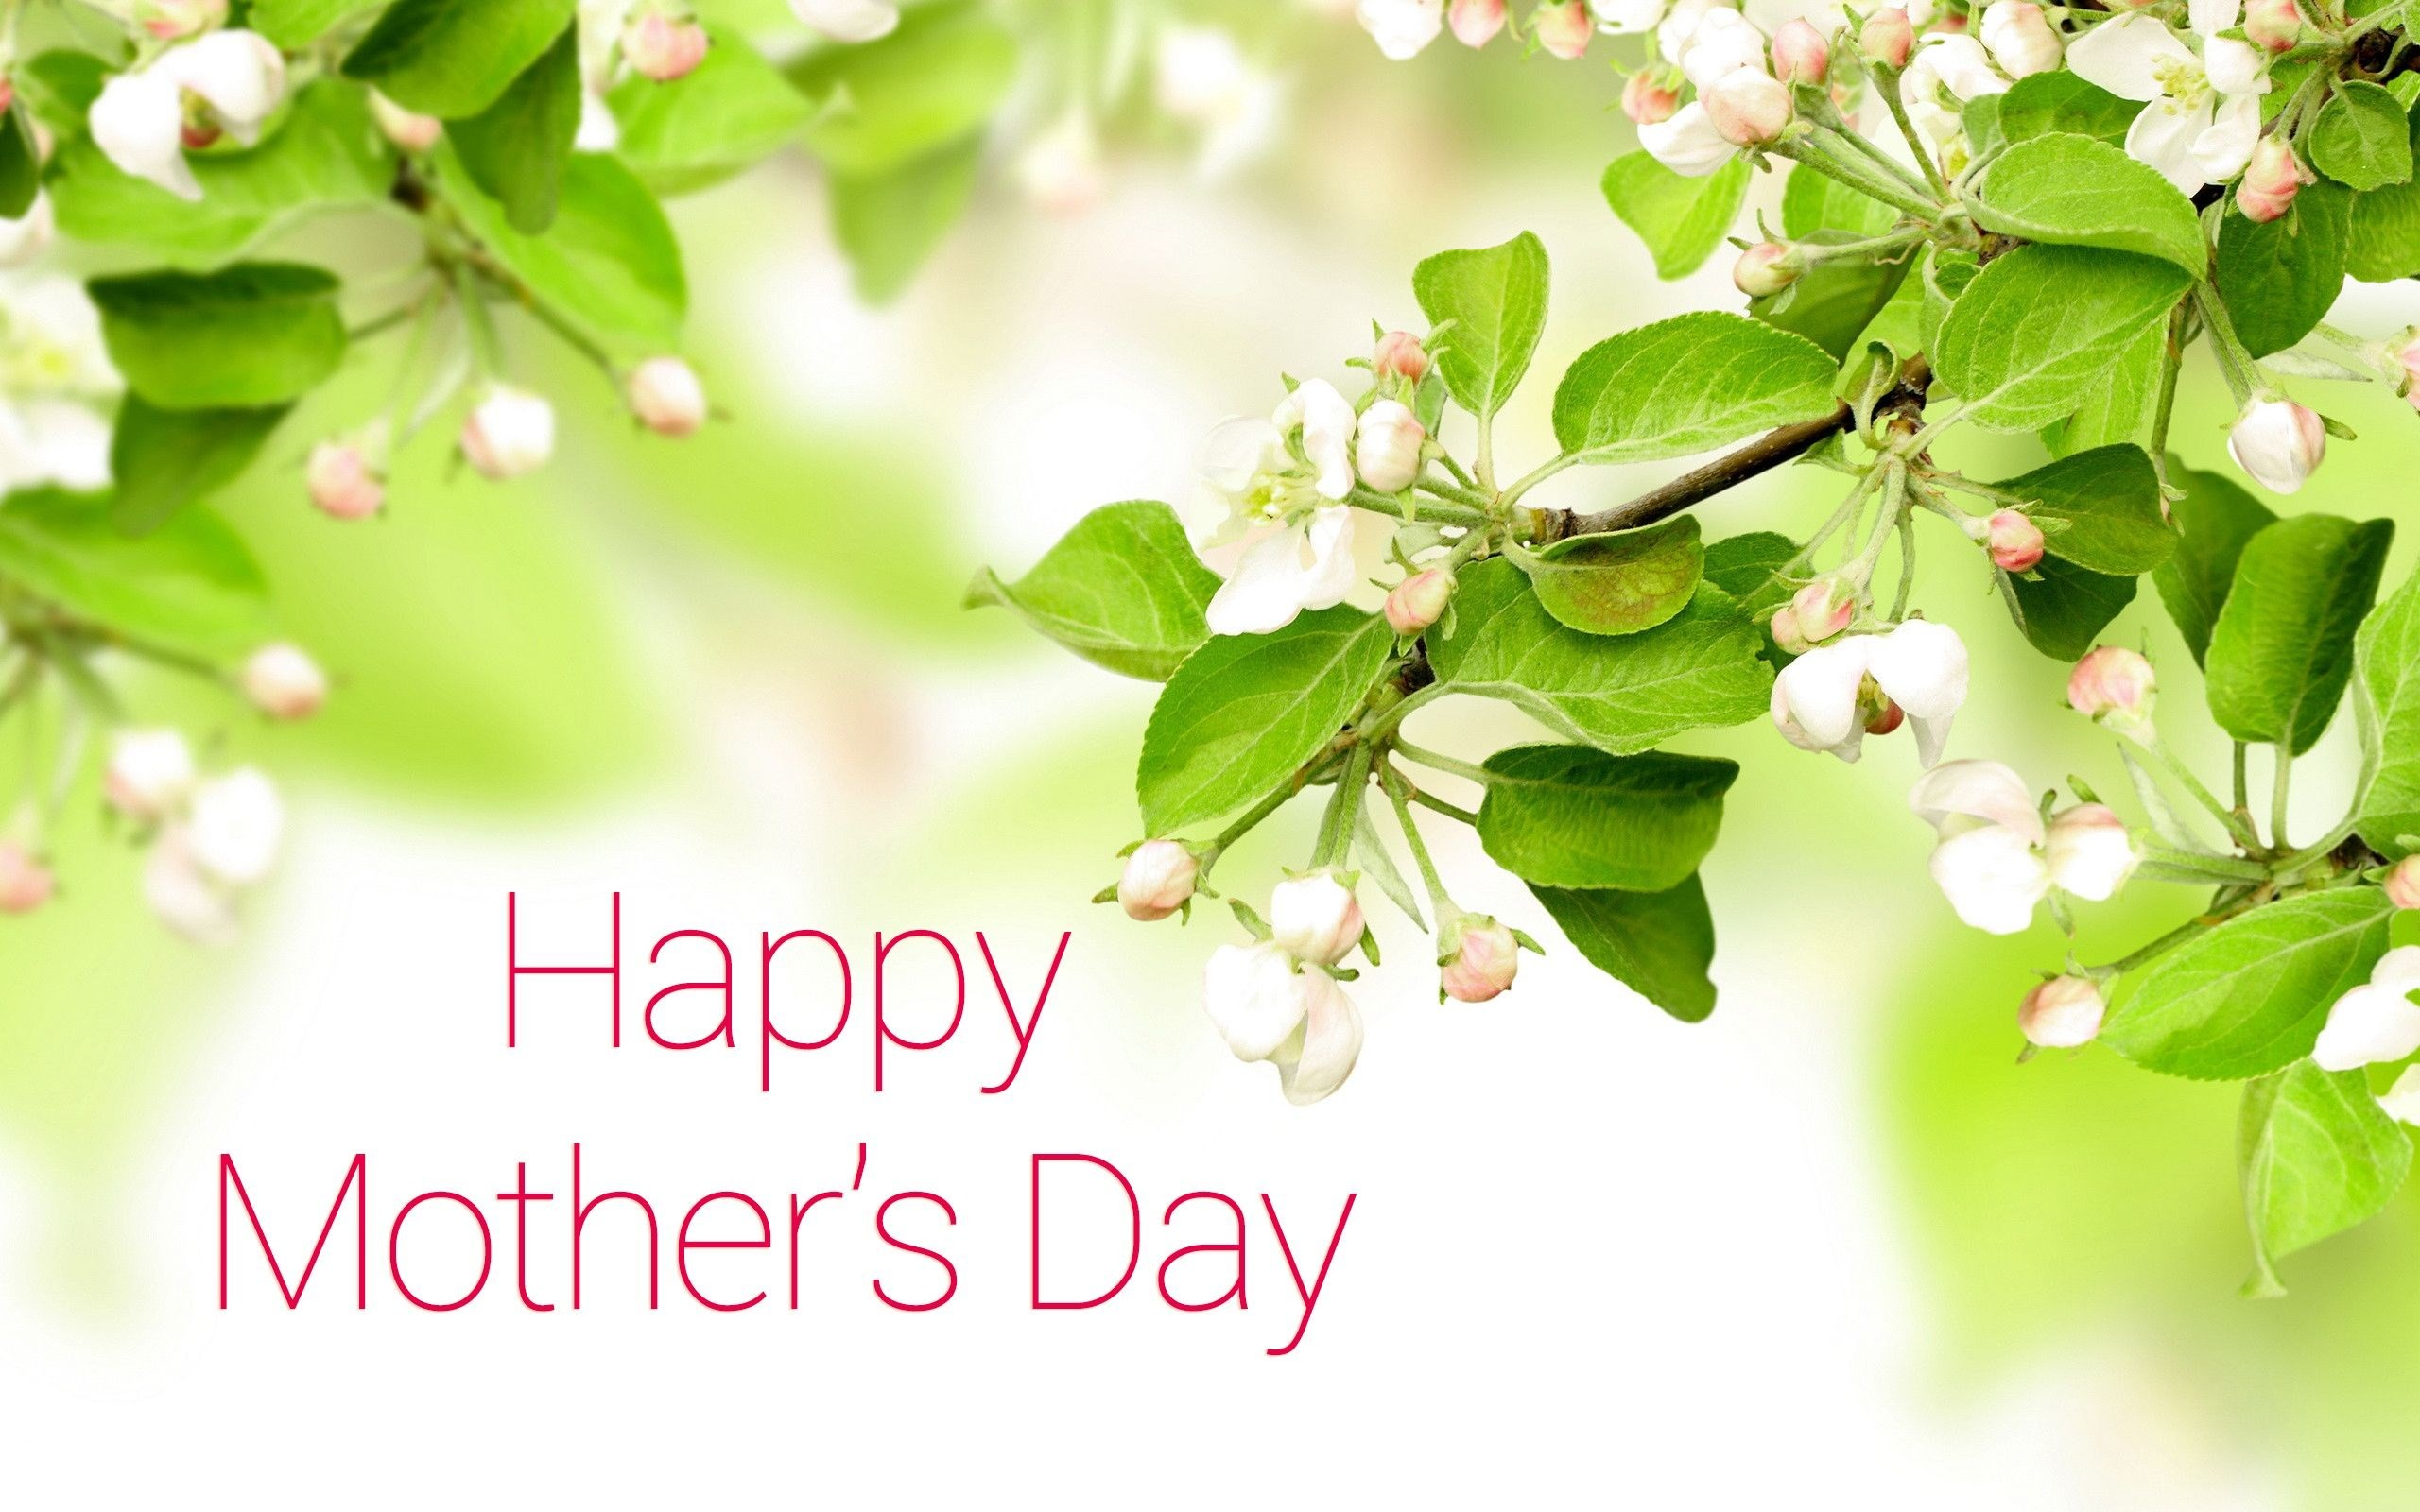 Mothers Day Wallpaper Images (54+ images)